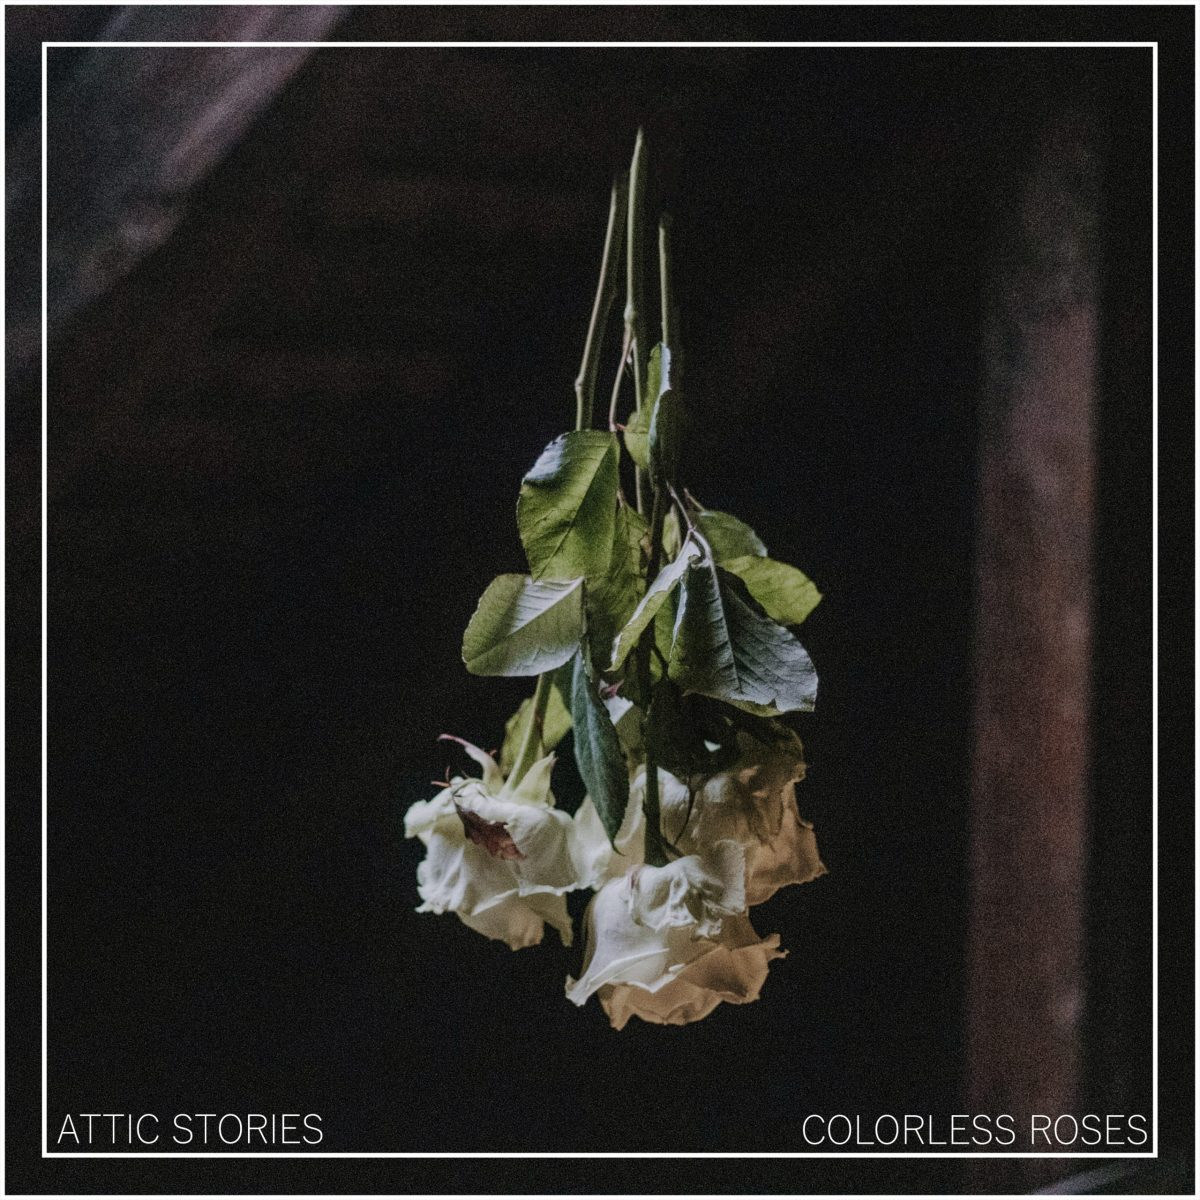 attic-stories-colorless-roses-single-vorstellung